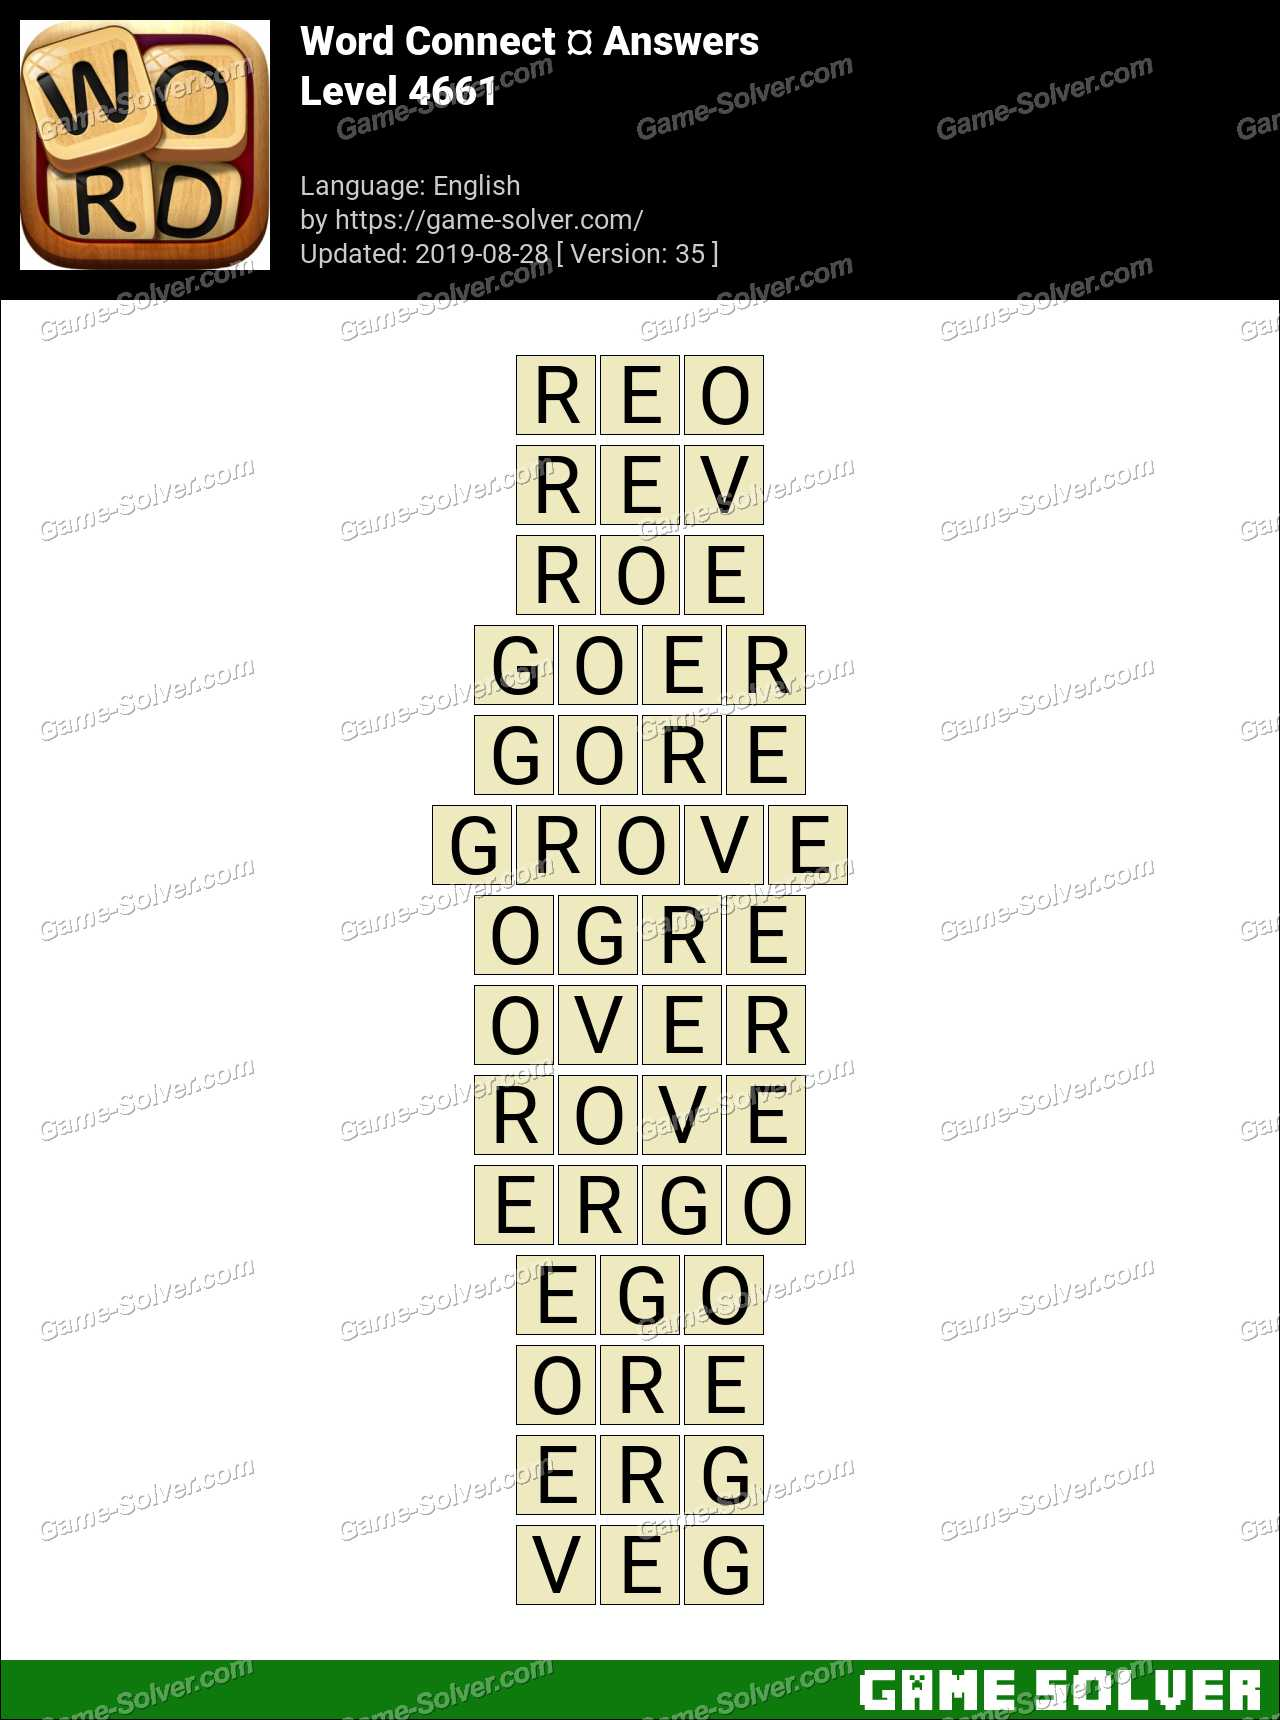 Word Connect Level 4661 Answers